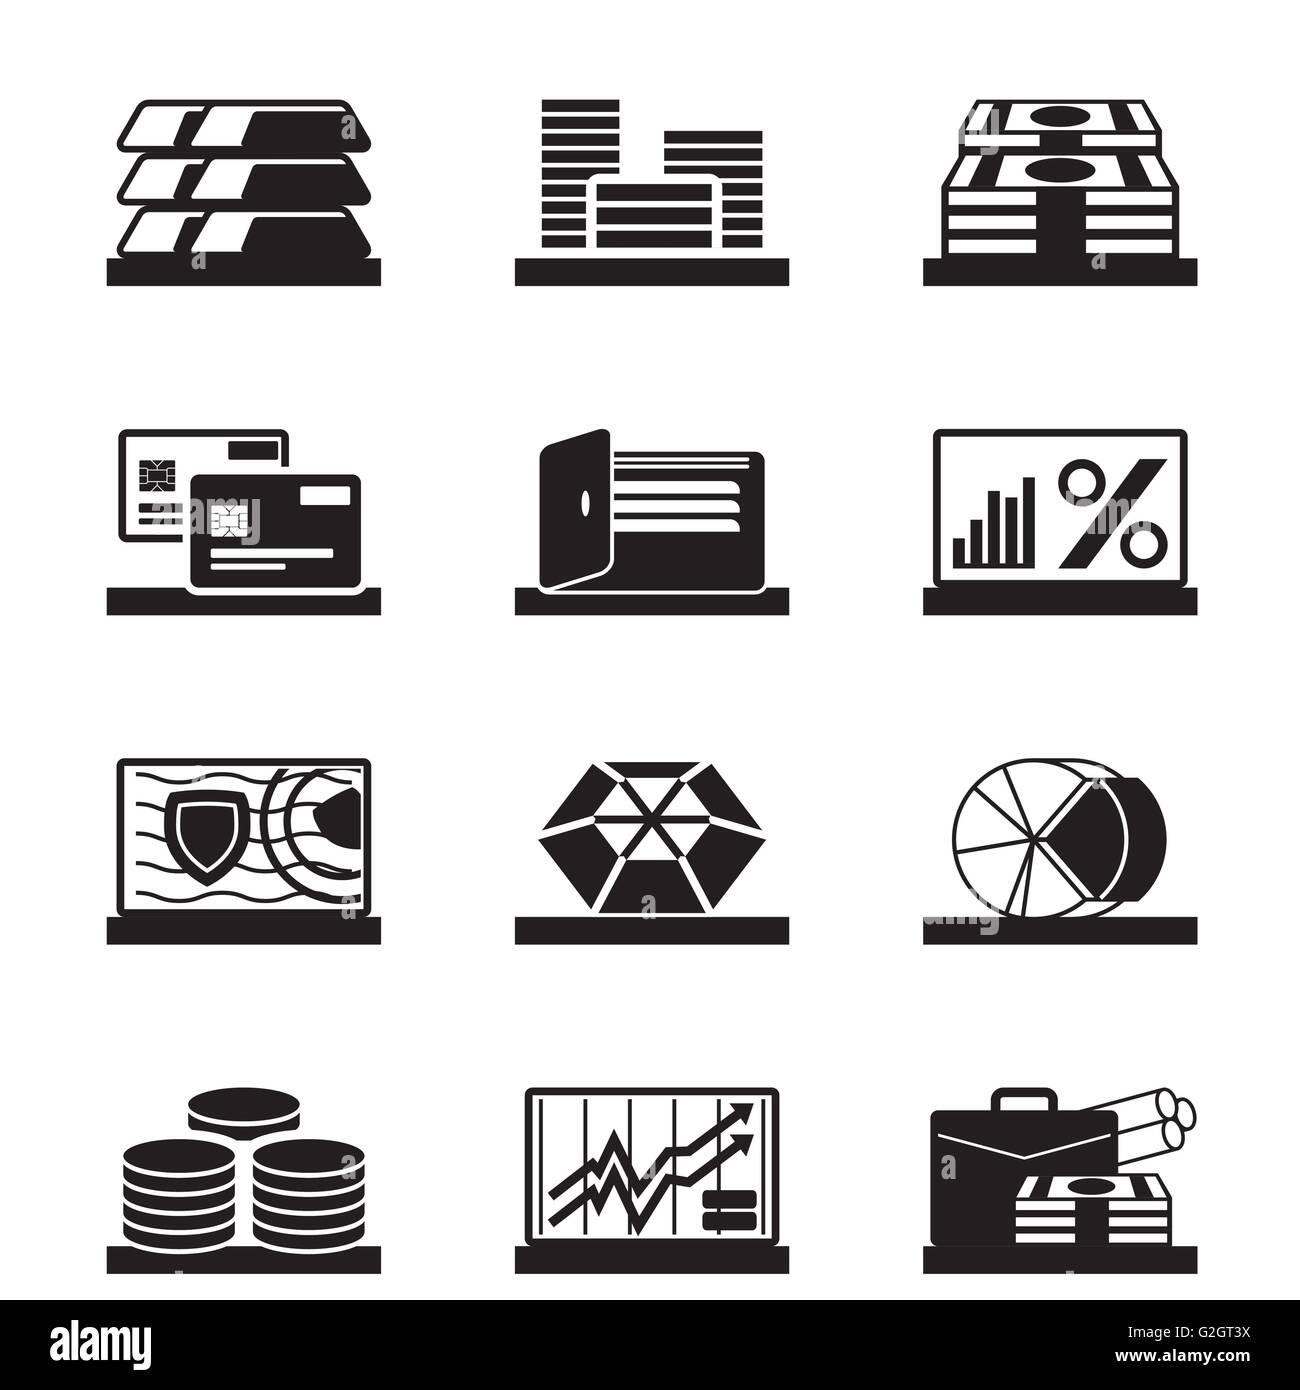 Financial assets, values and operations - vector illustration - Stock Image